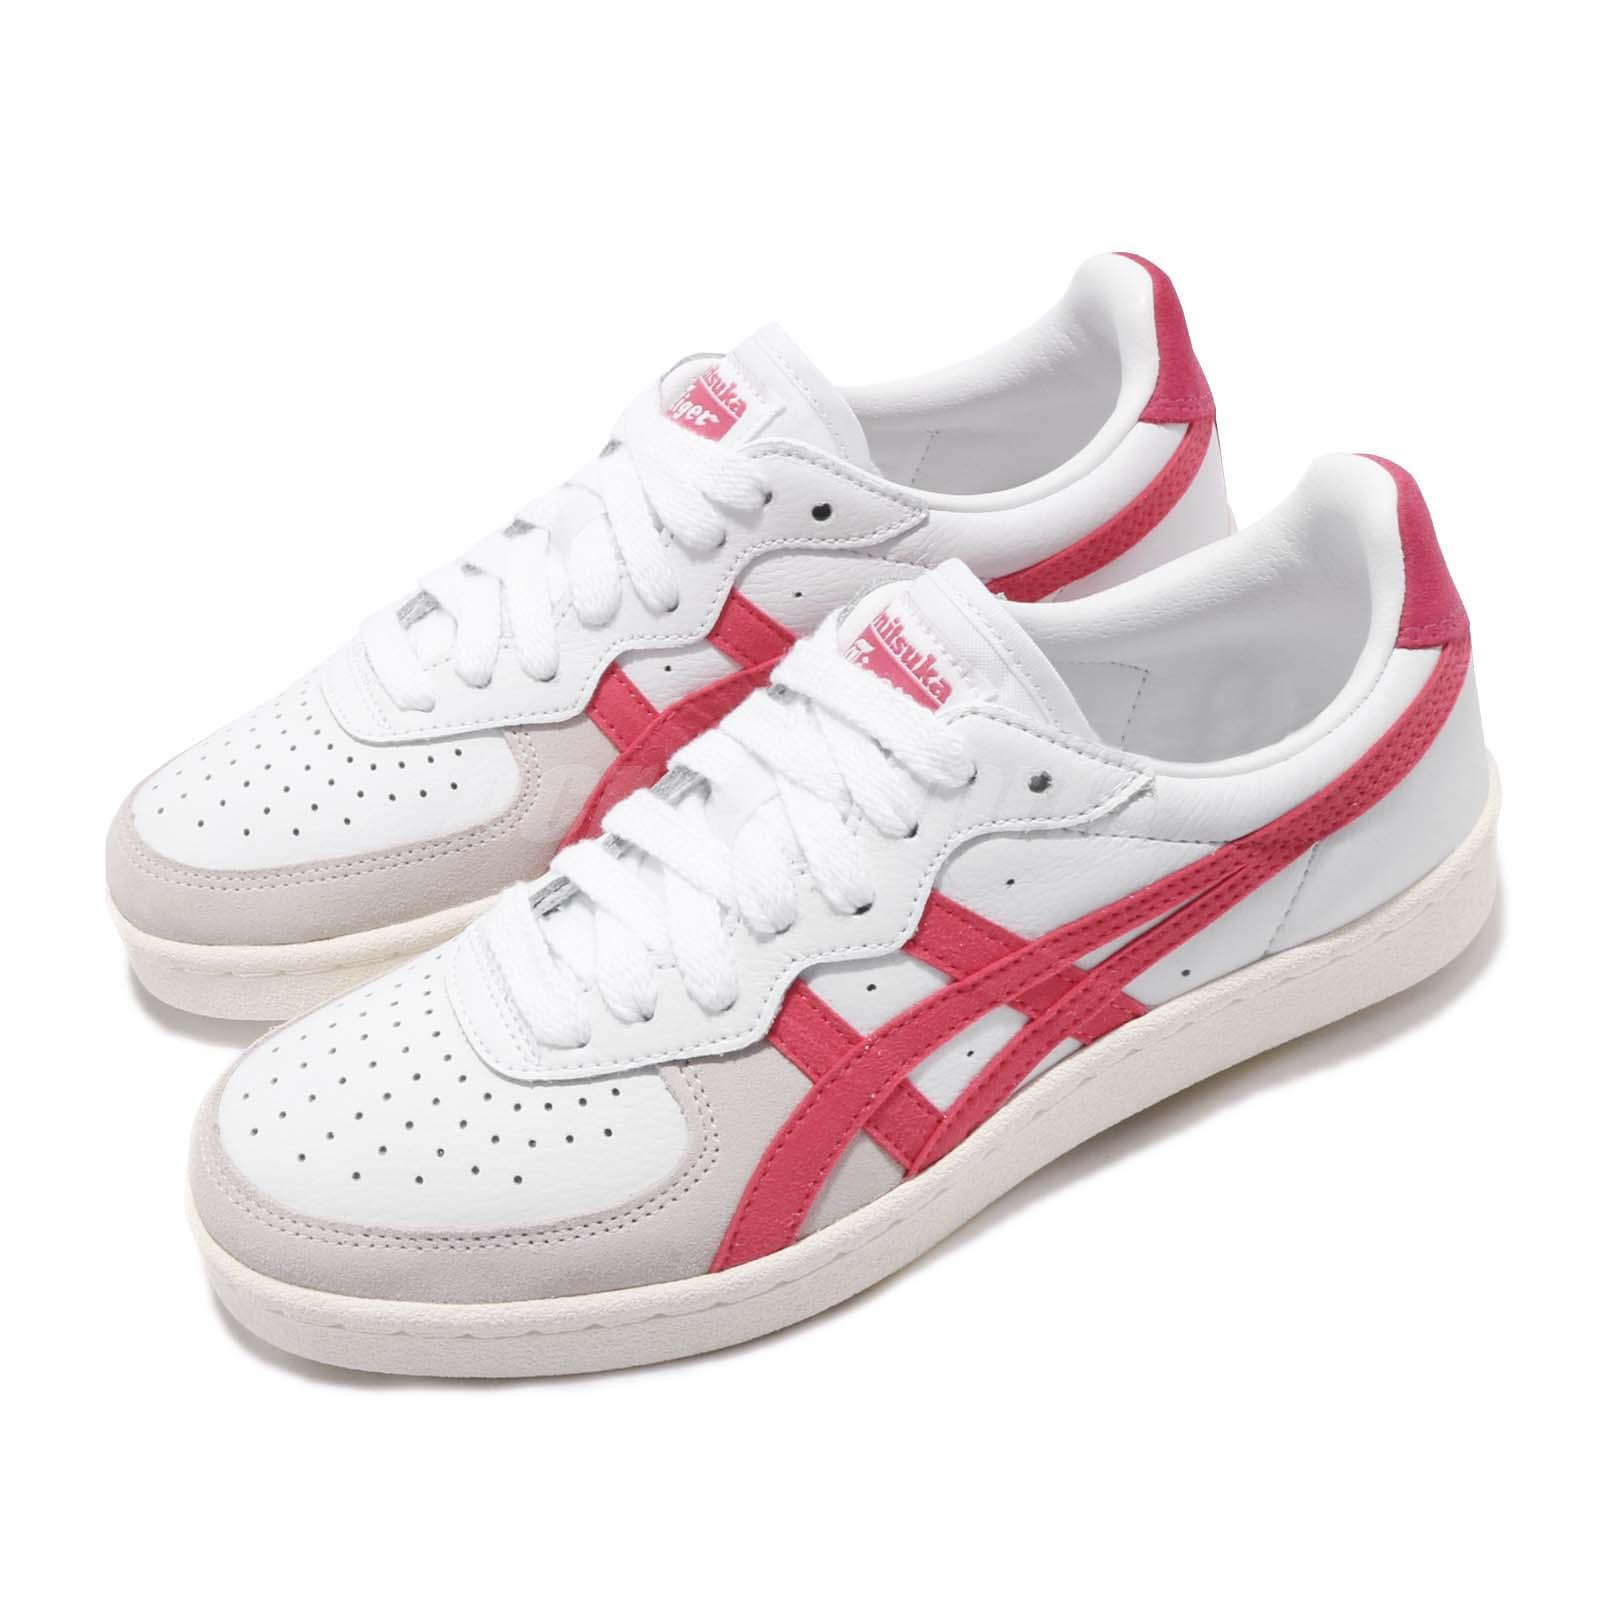 Details about Asics Onitsuka Tiger GSM White Pitaya Women Classic Shoes  Sneakers 1182A076-102